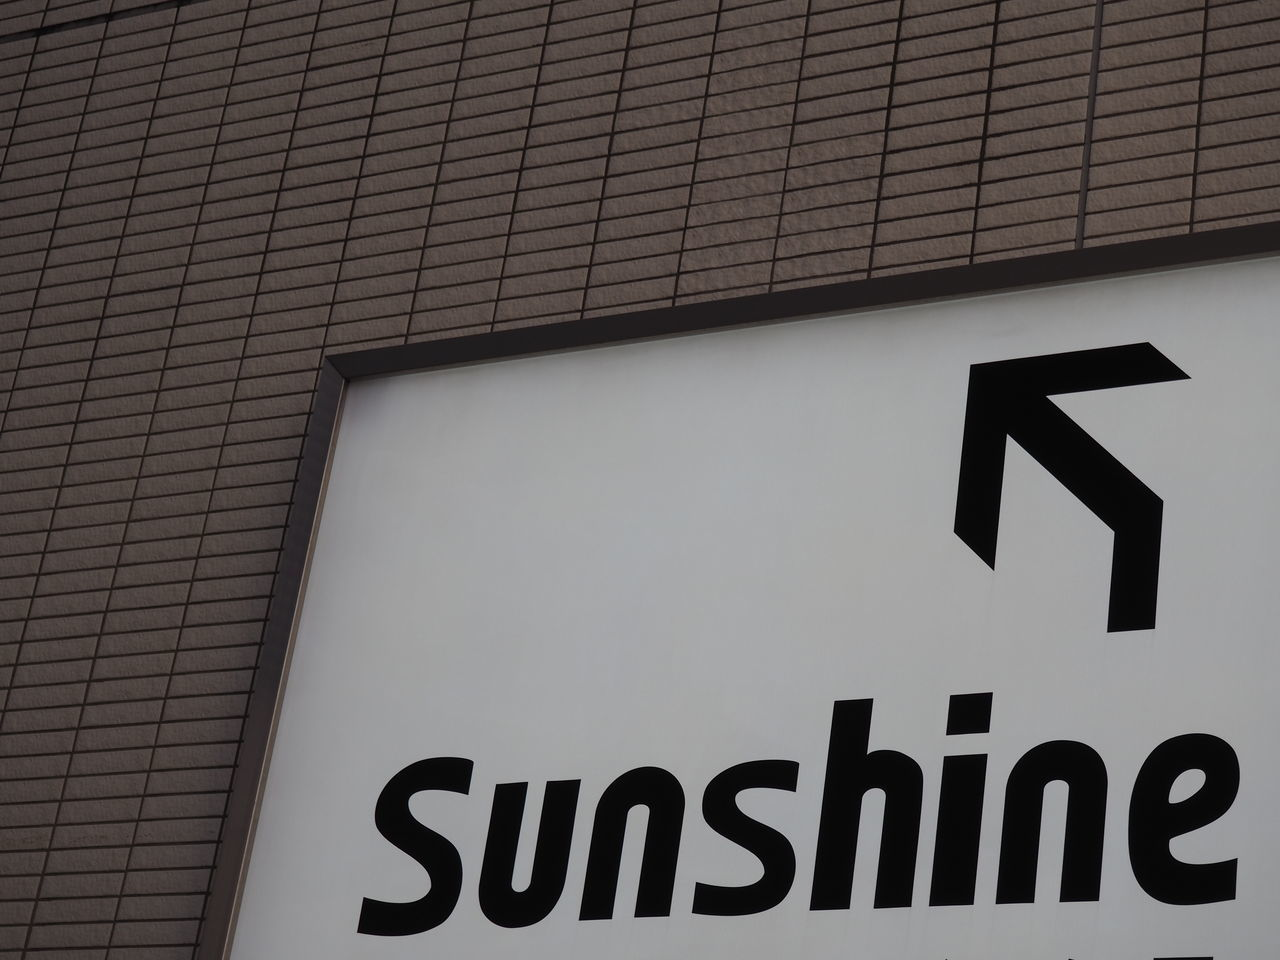 Architecture Building Exterior Built Structure Close-up Communication Consumerism Consumerist Culture Day Direction Dream Exit Sign Guidance Hope No People Outdoors Road Sign Sunshine Text